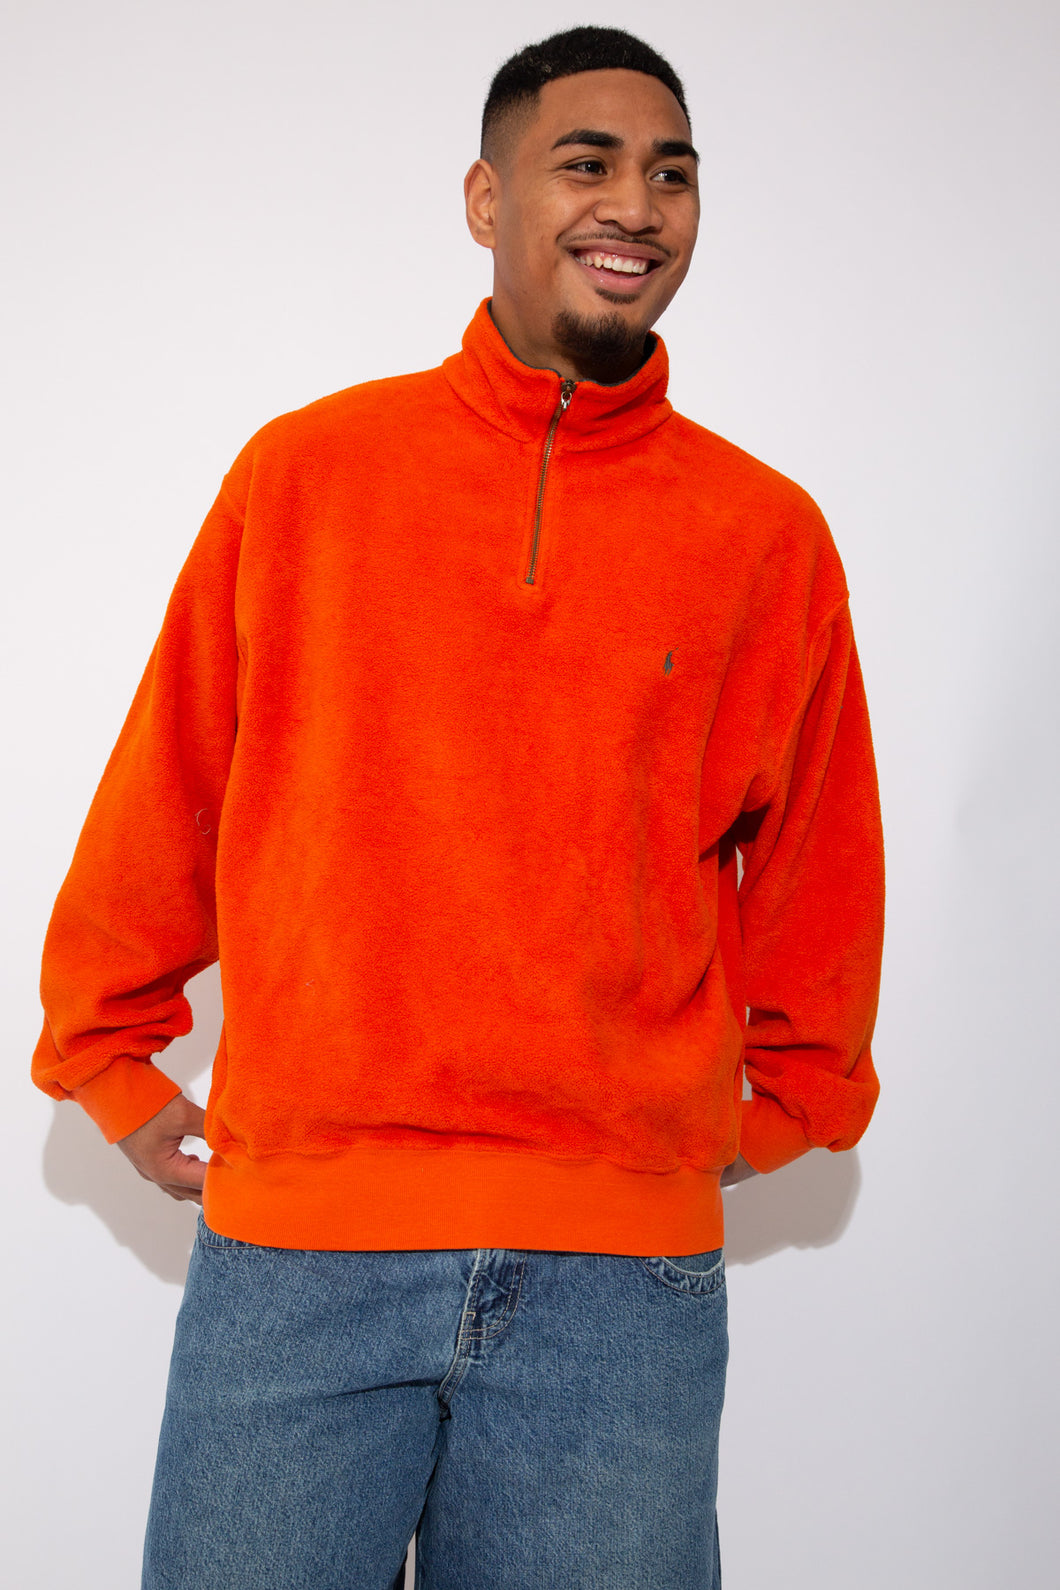 orange fleece quarterzip with ralph lauren embroidered logo on left chest - vintage - magichollow